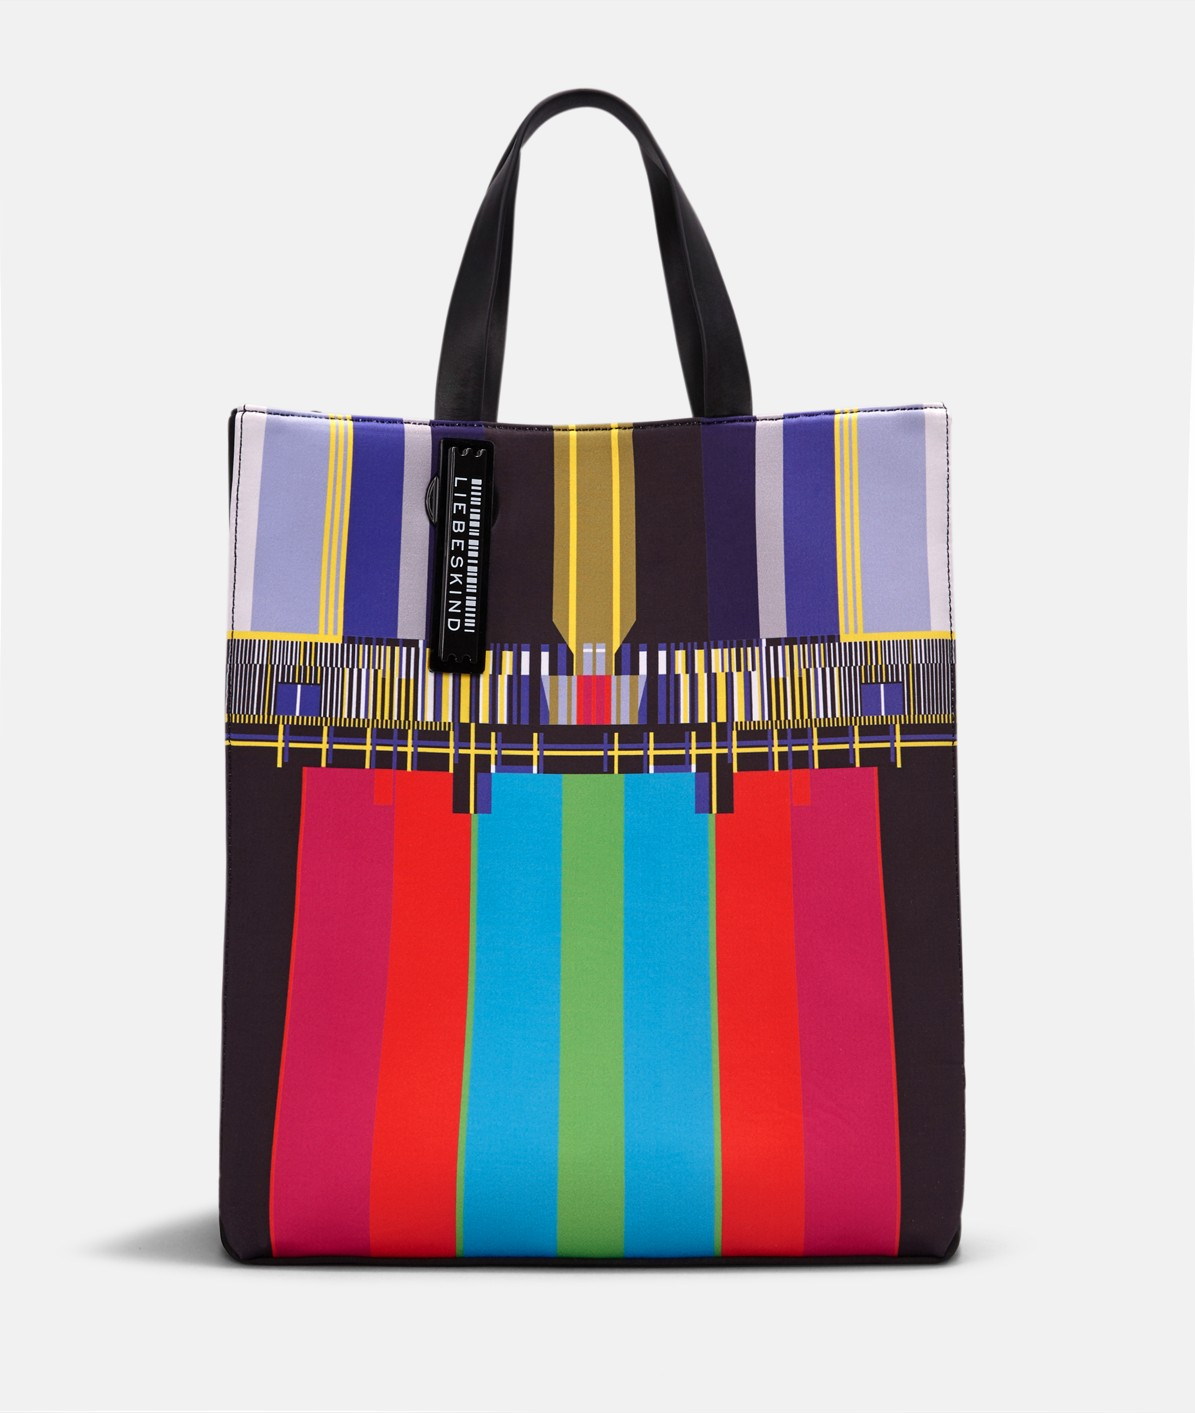 Neoprene tote bag with a TV screen print from liebeskind